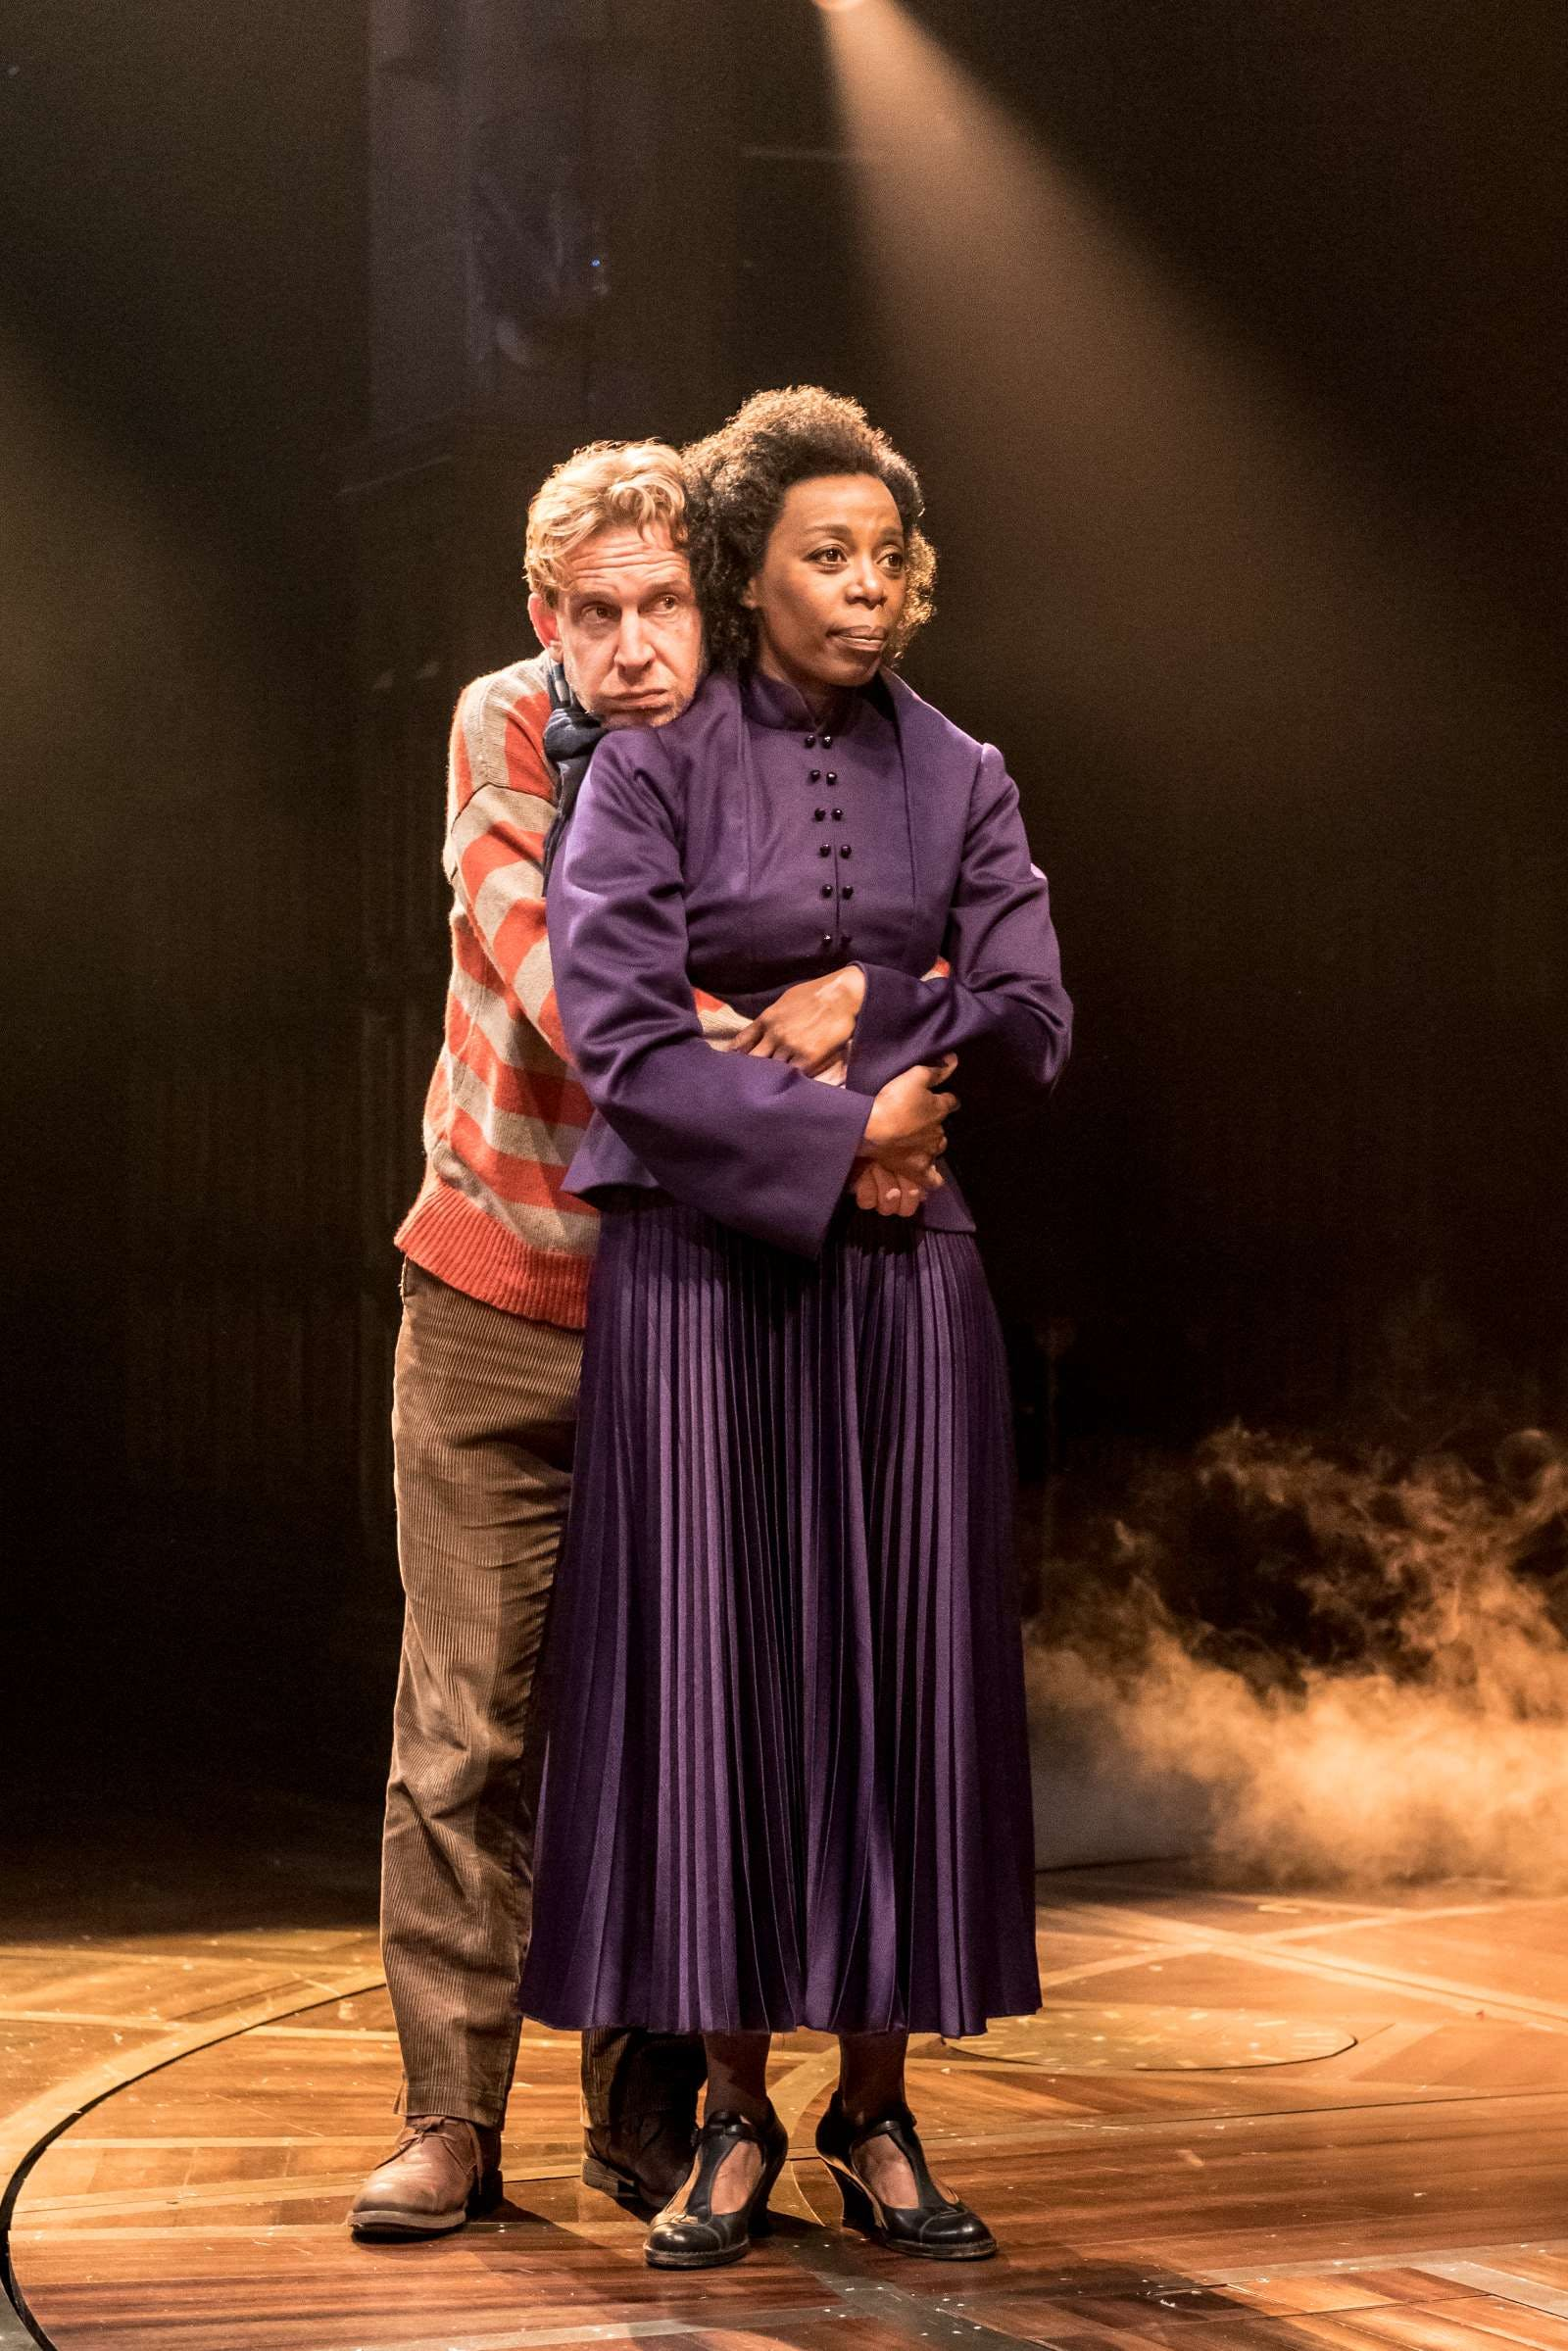 Ron and Hermione in Harry Potter and the Cursed Child